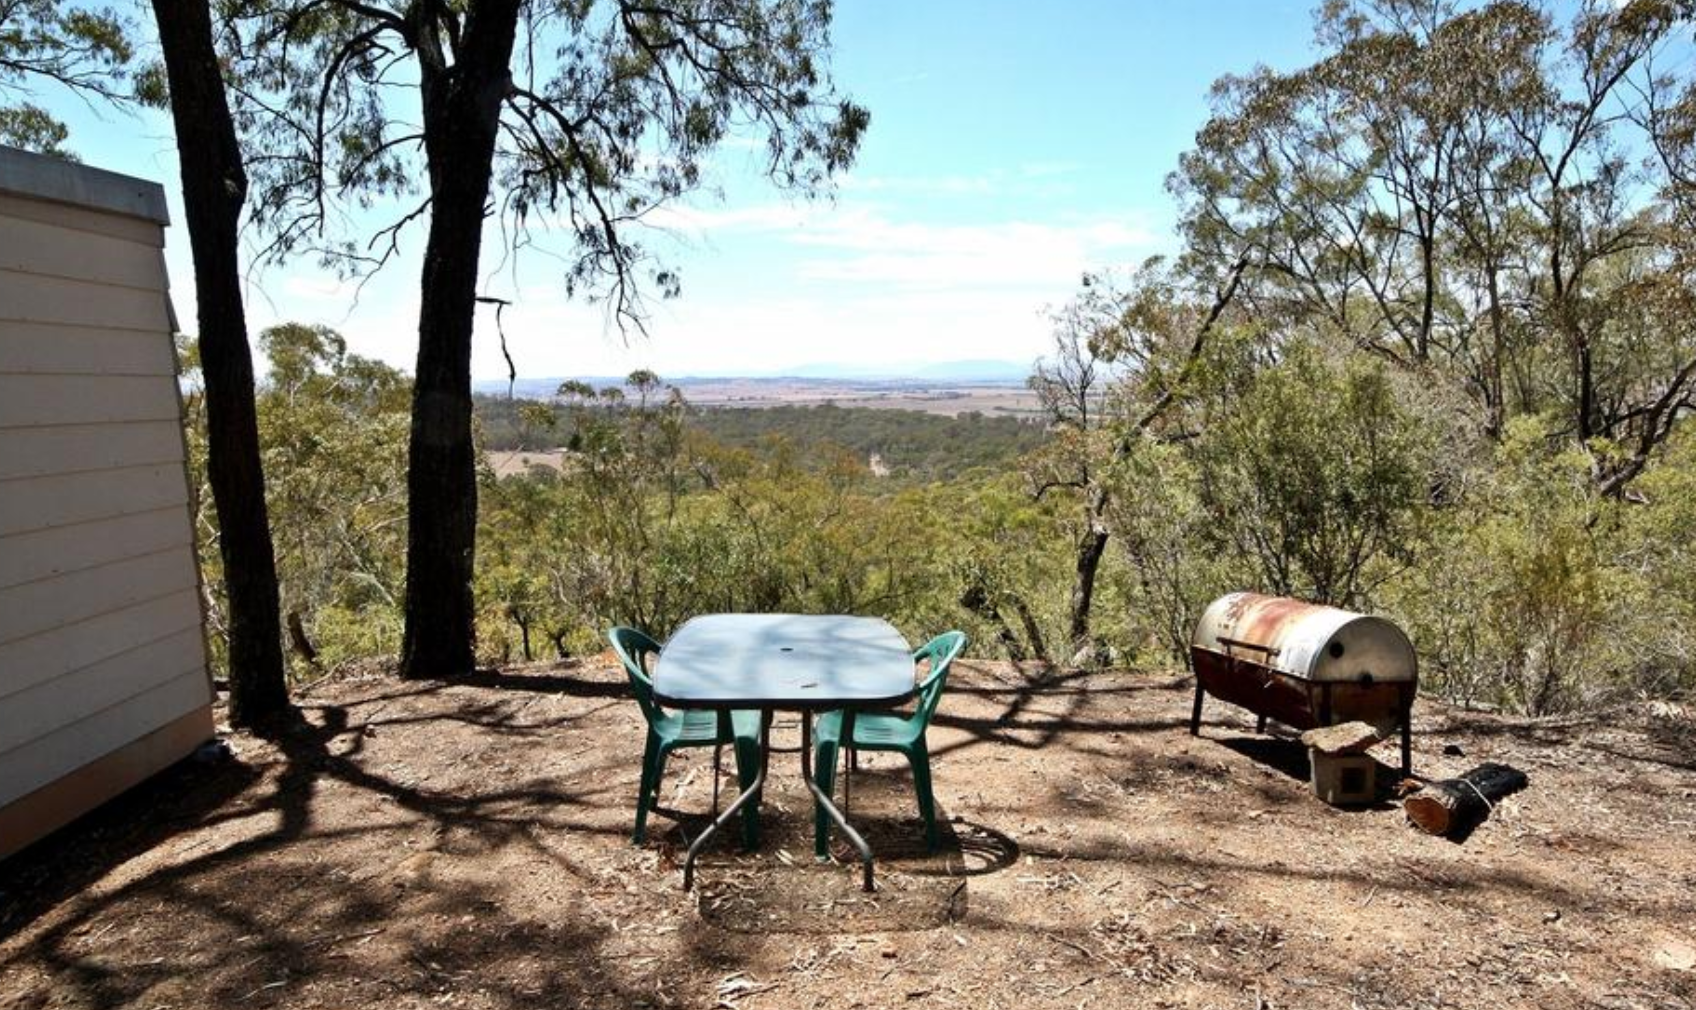 NSW: Could throw a killer bush bash right here